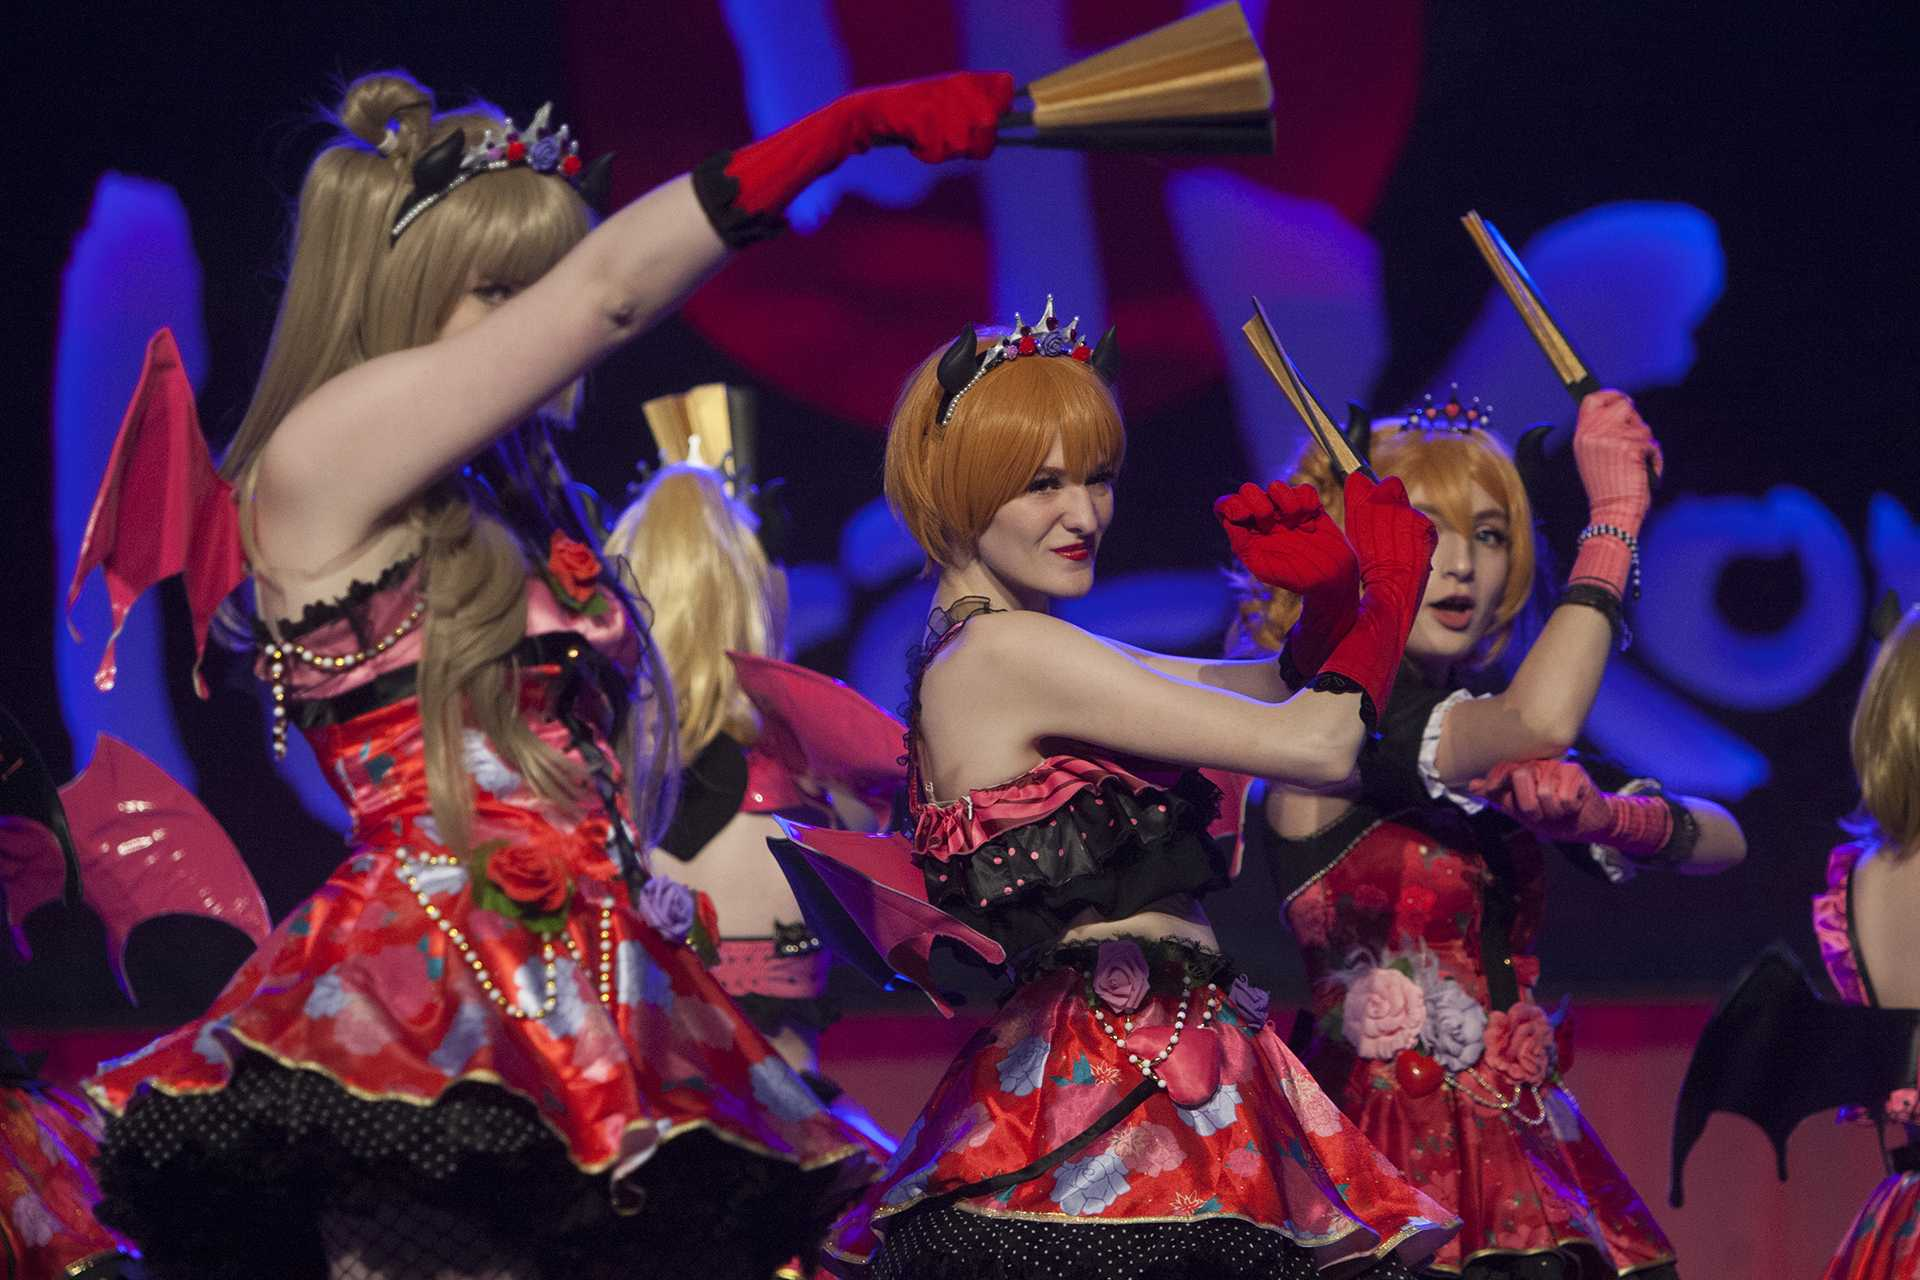 Photos: Now loading: Cosplay in Iowa